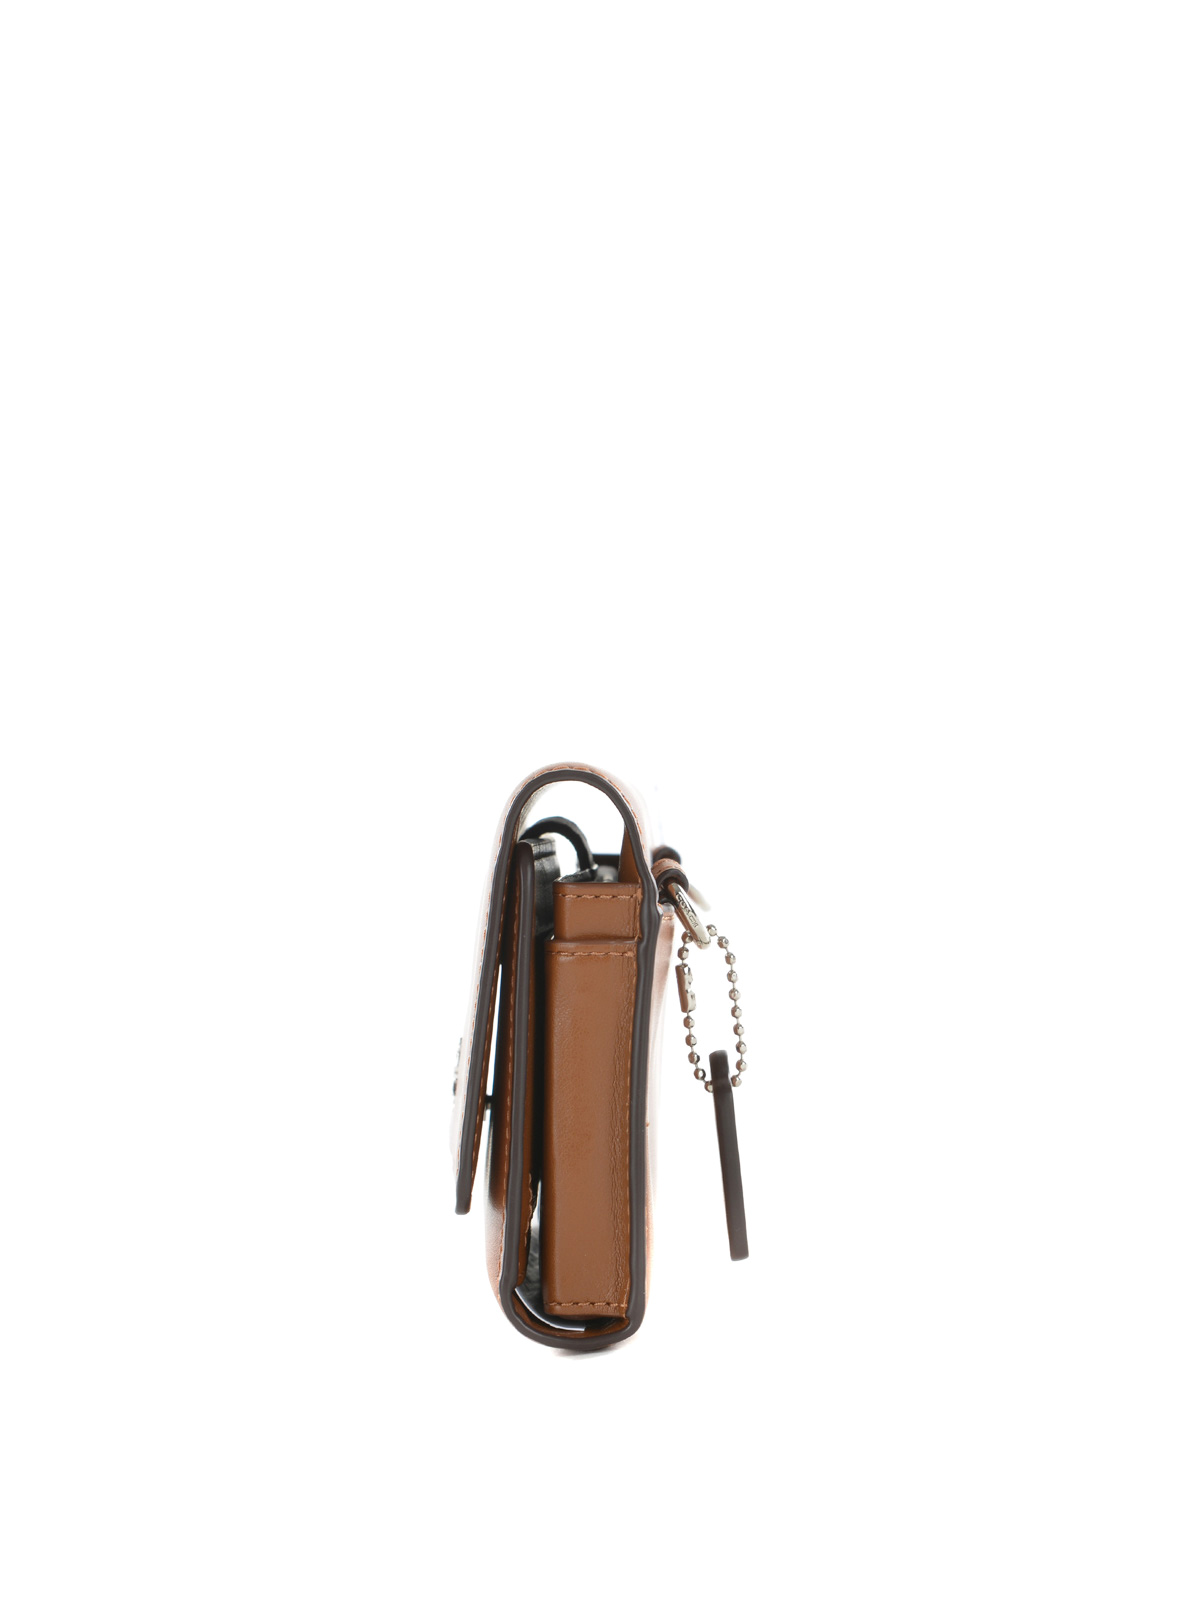 sale retailer b0723 bab02 Coach - Nappa wallet and phone case - cross body bags - 65558 SV SADDLE